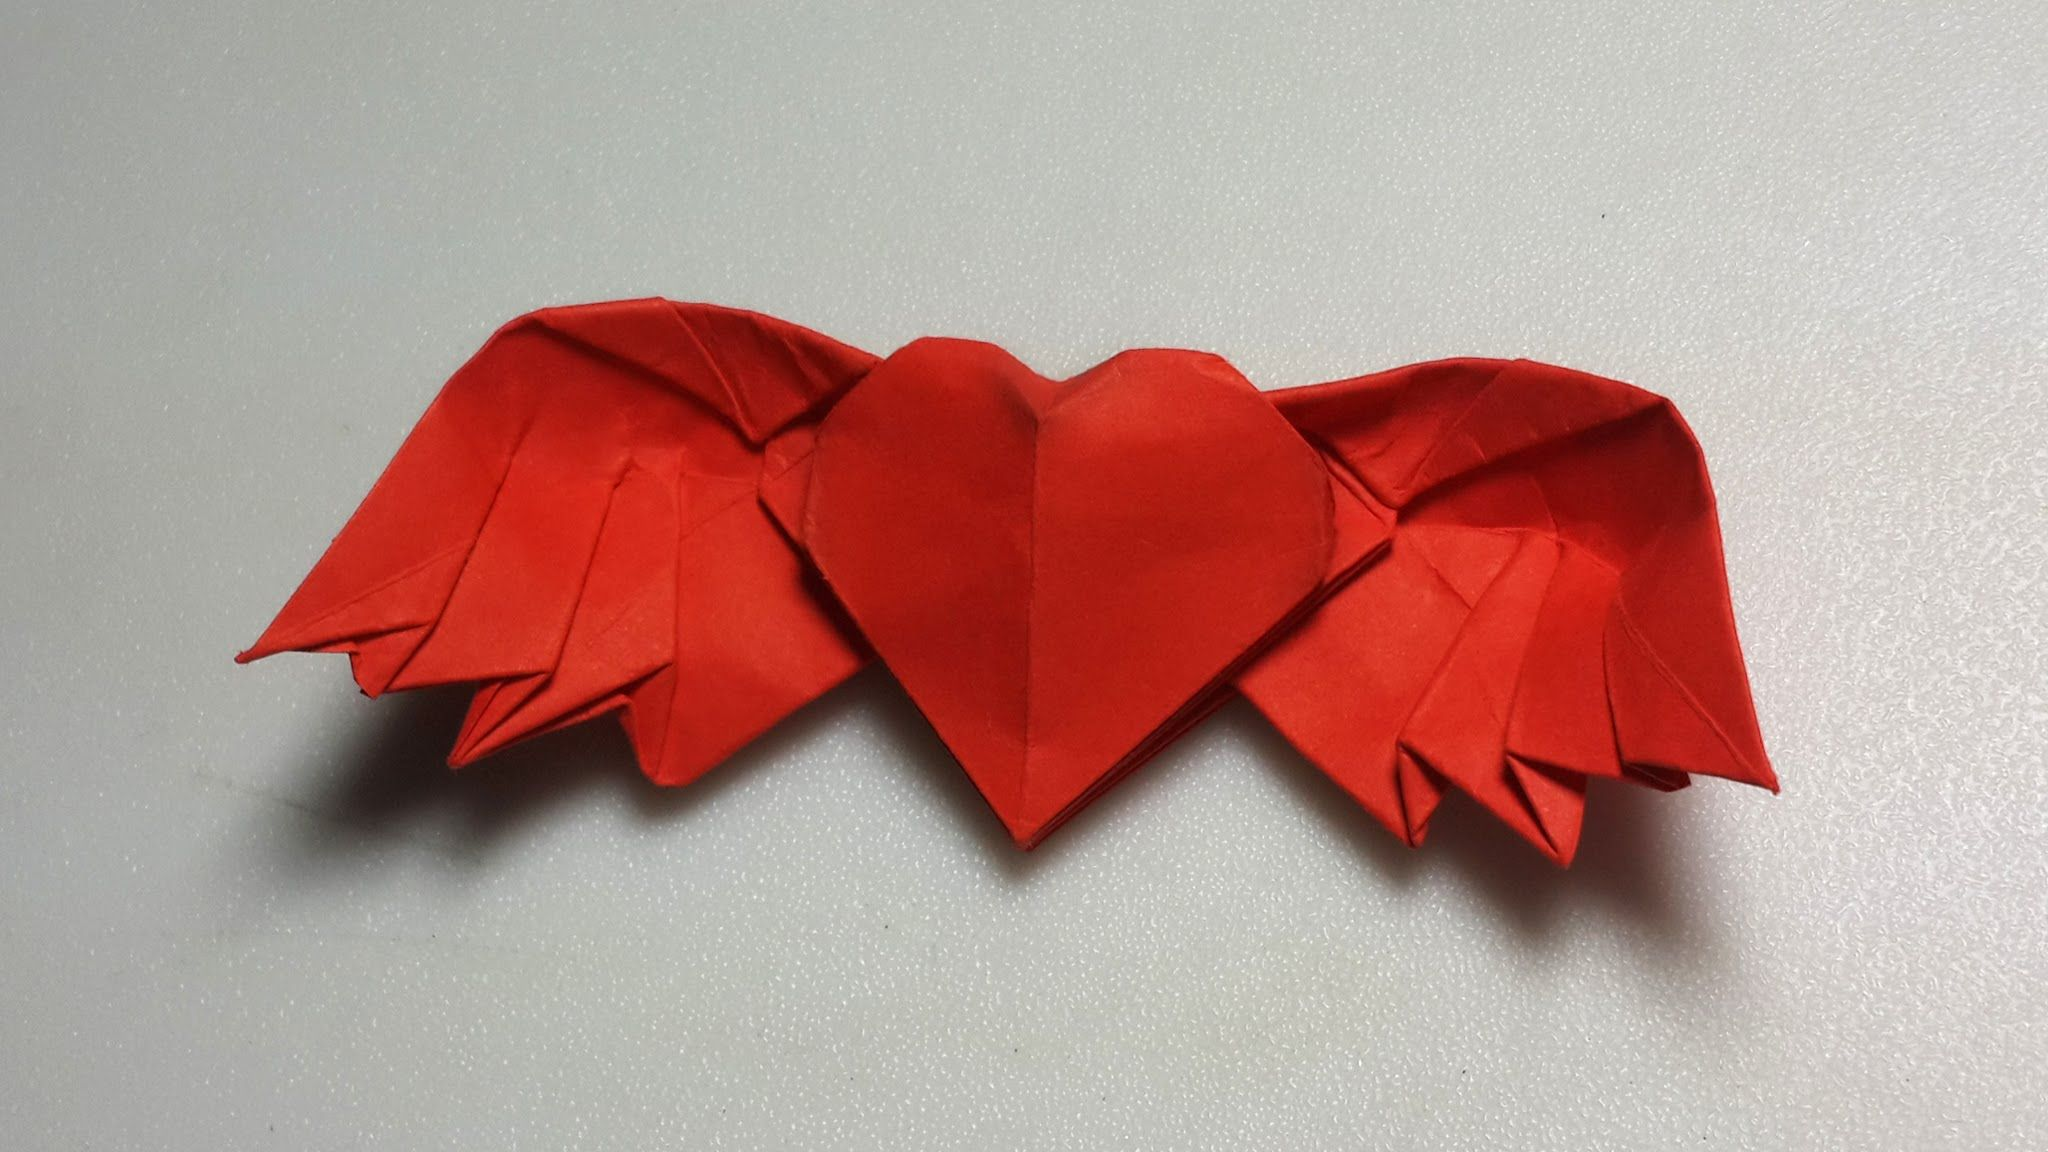 How To Make An Origami Heart Origami Winged Heart 3 0 Henry Phạm Origami Heart Money Origami Origami